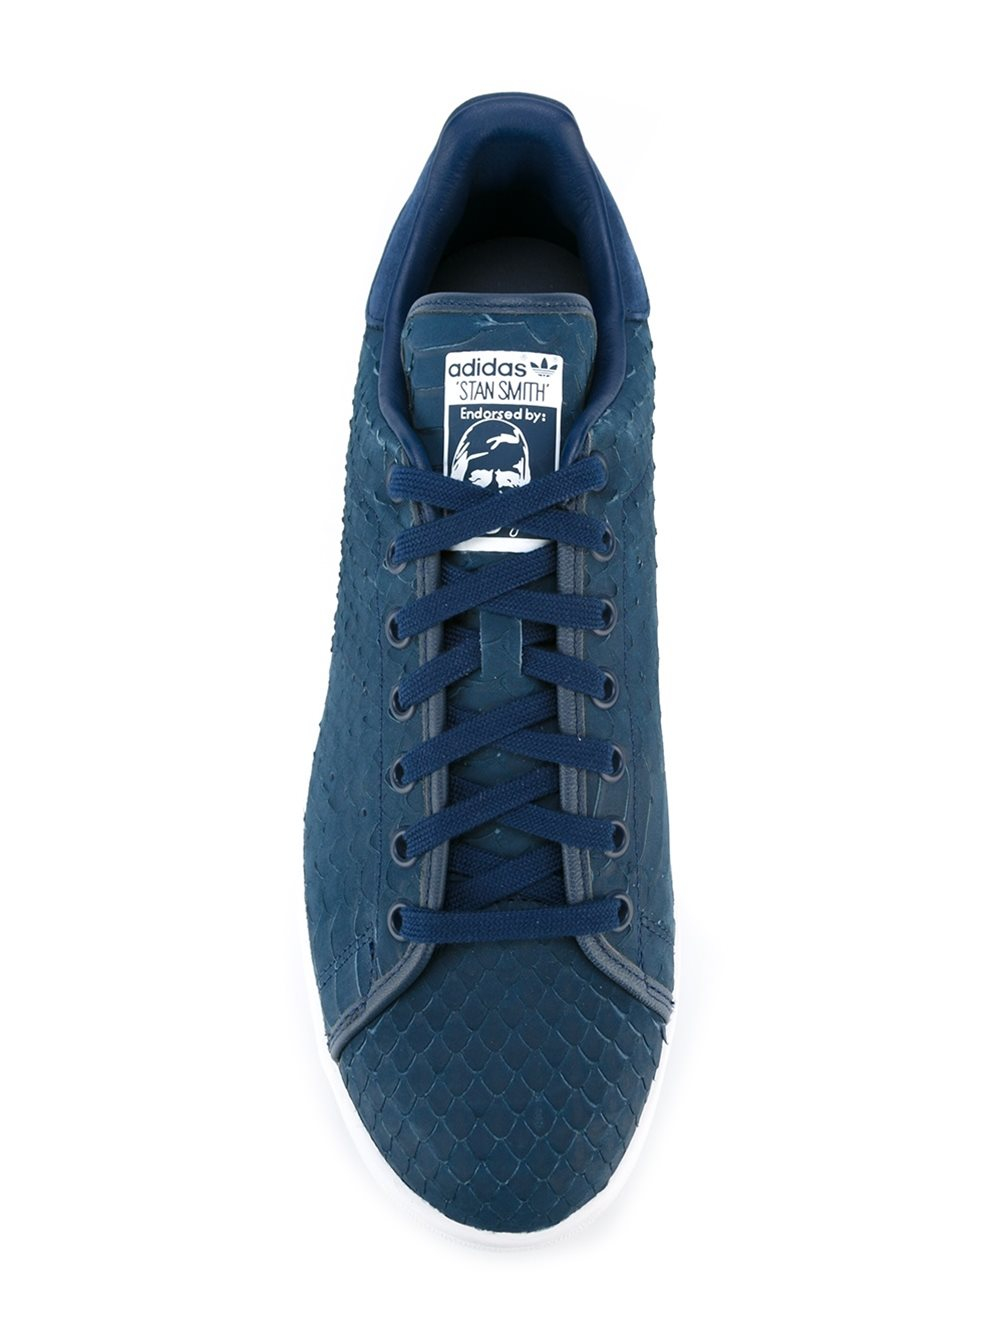 4149c3f60a45a adidas Originals  stan Smith Decon  Sneakers in Blue for Men - Lyst